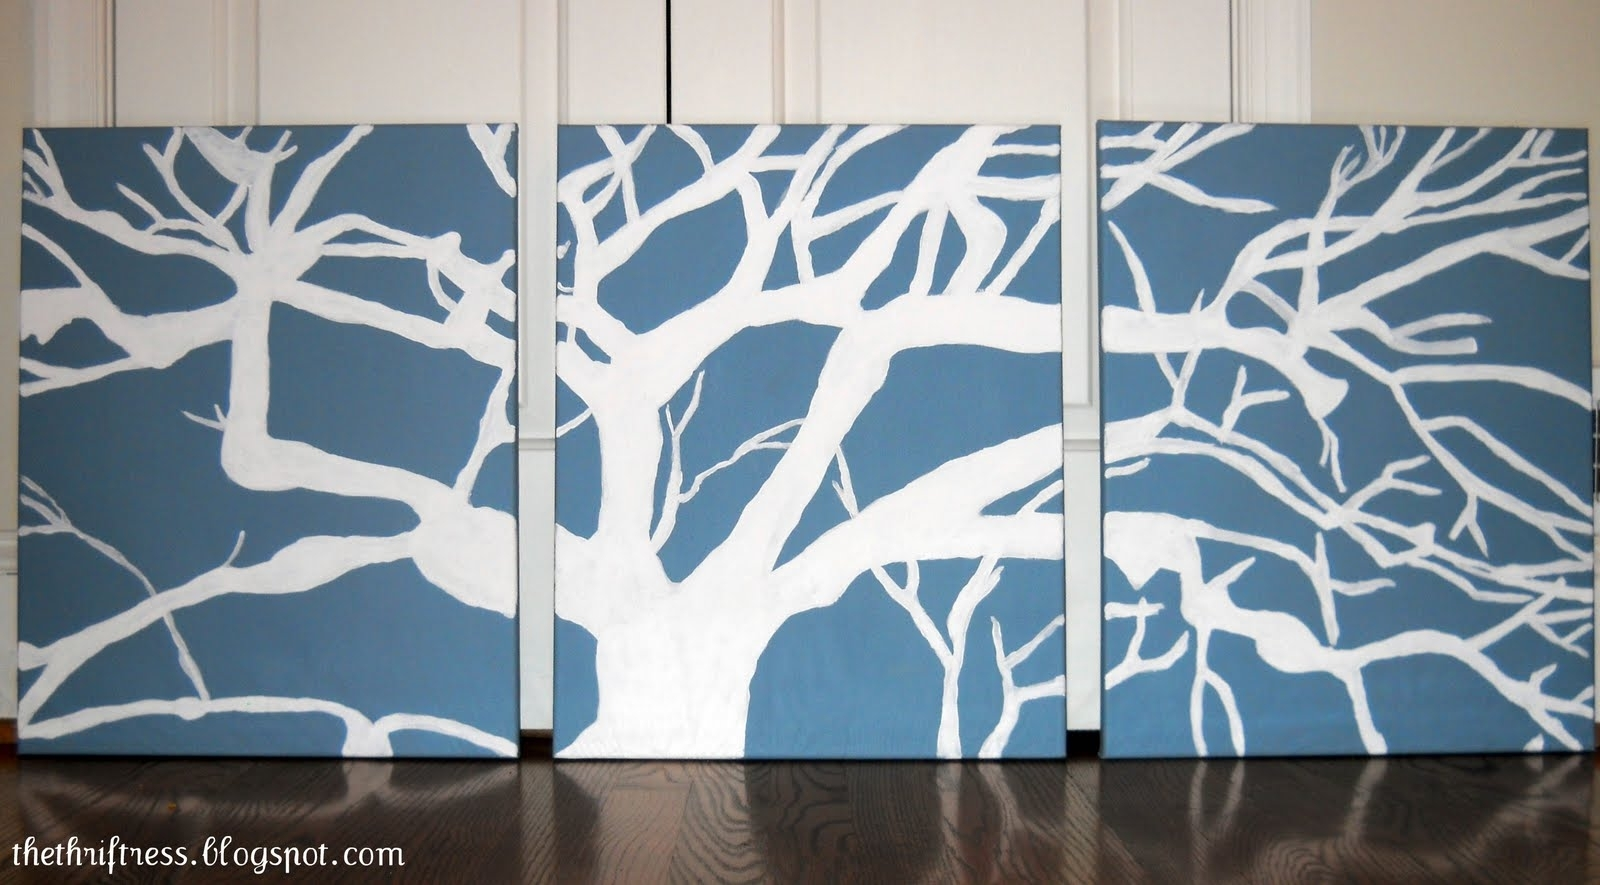 Diy Wall Art Stencils Paint Fabric – Dma Homes | #37854 Inside Newest Large Fabric Wall Art (View 5 of 15)